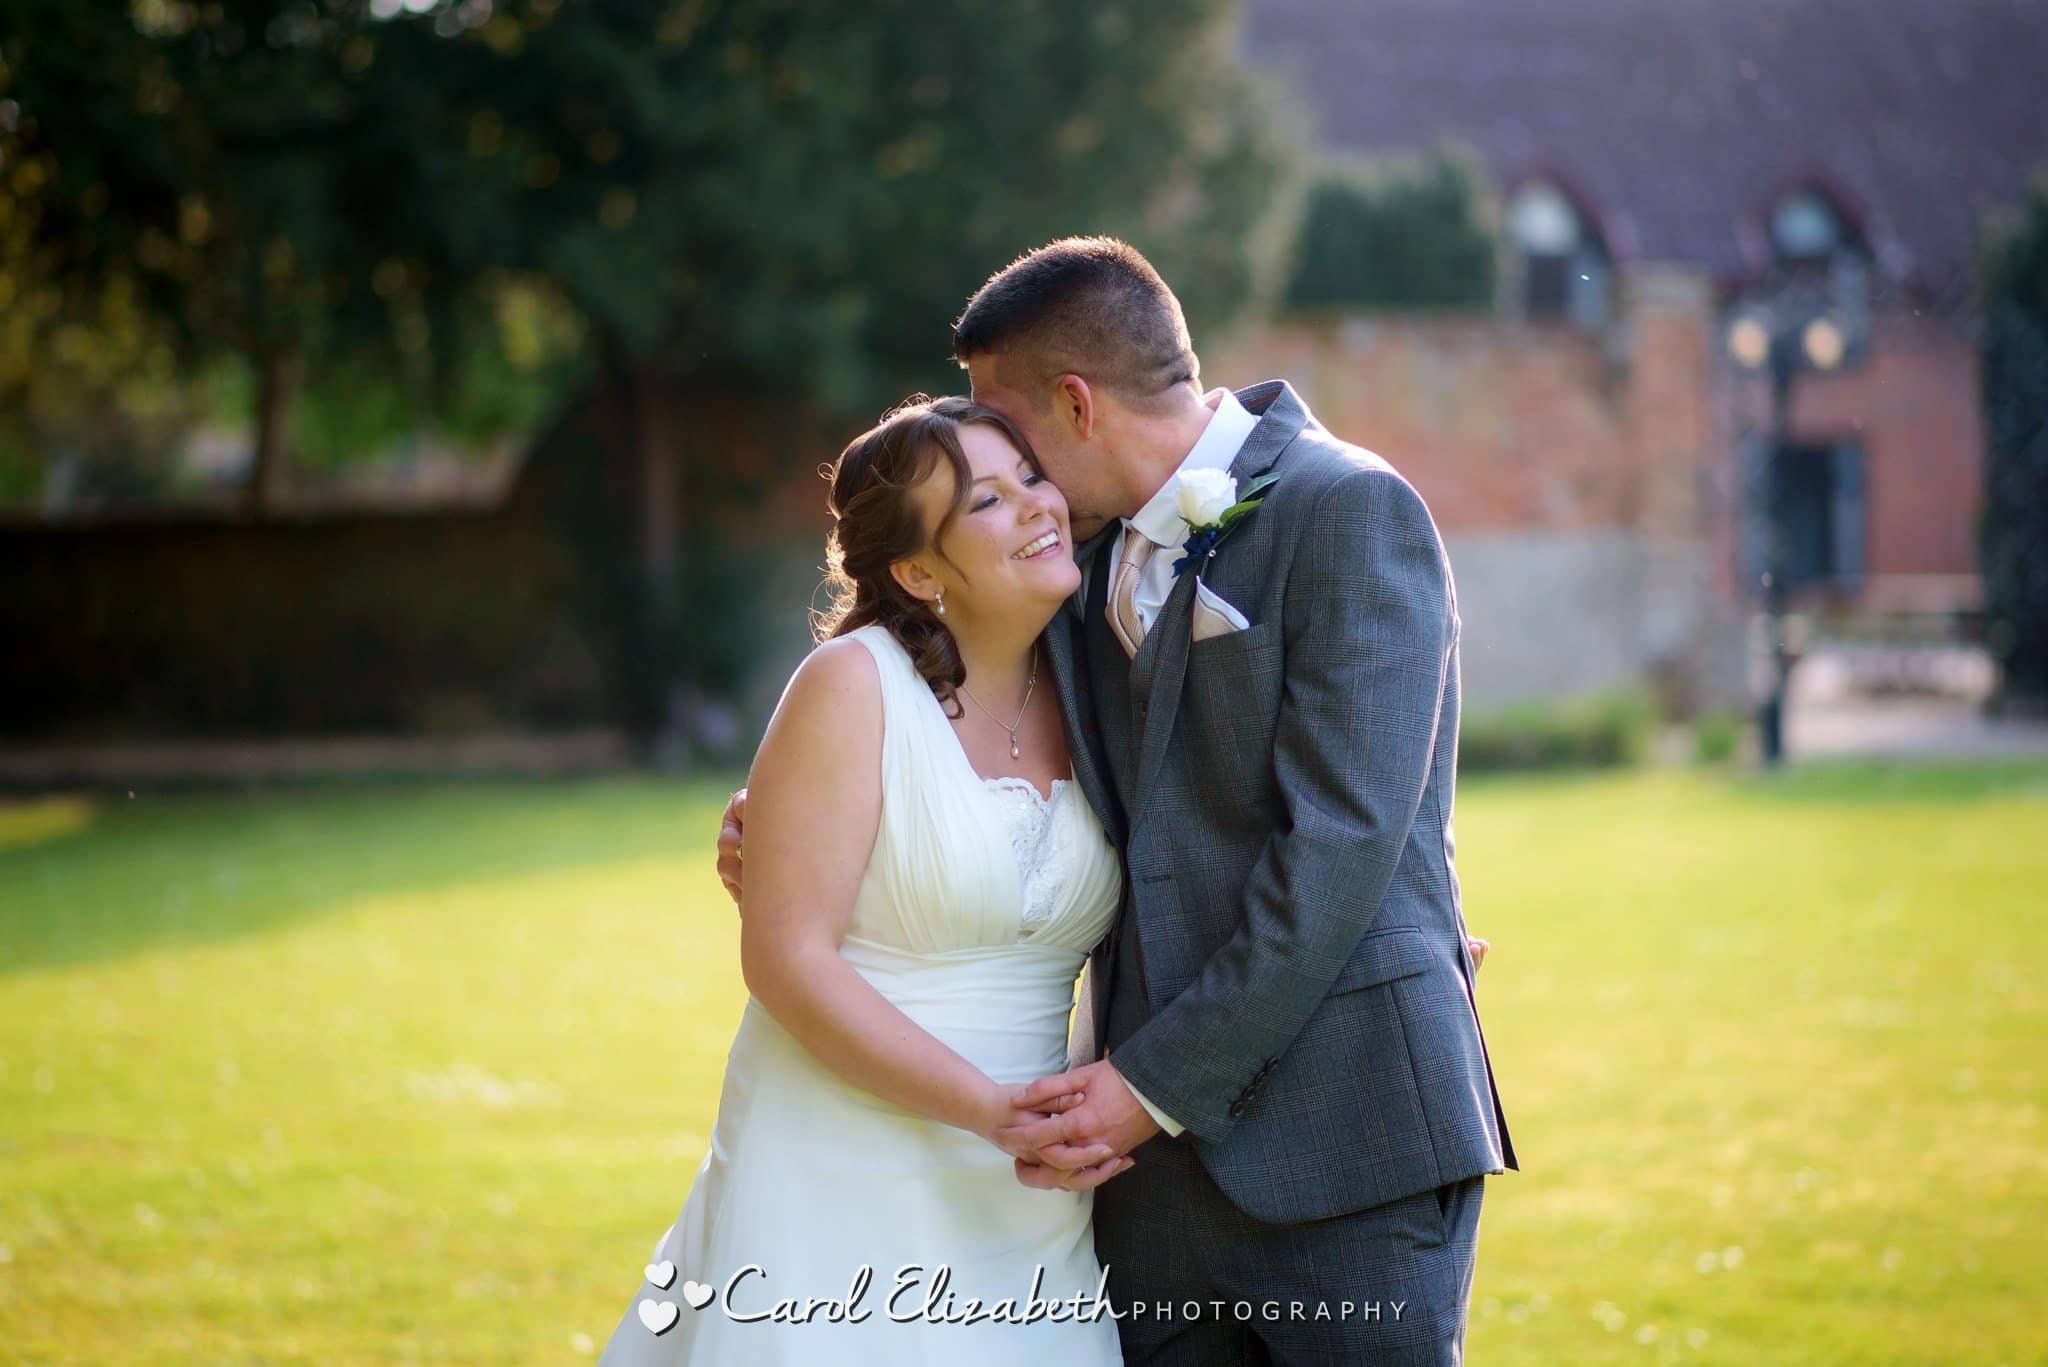 Abingdon wedding photographer Carol Elizabeth Photography